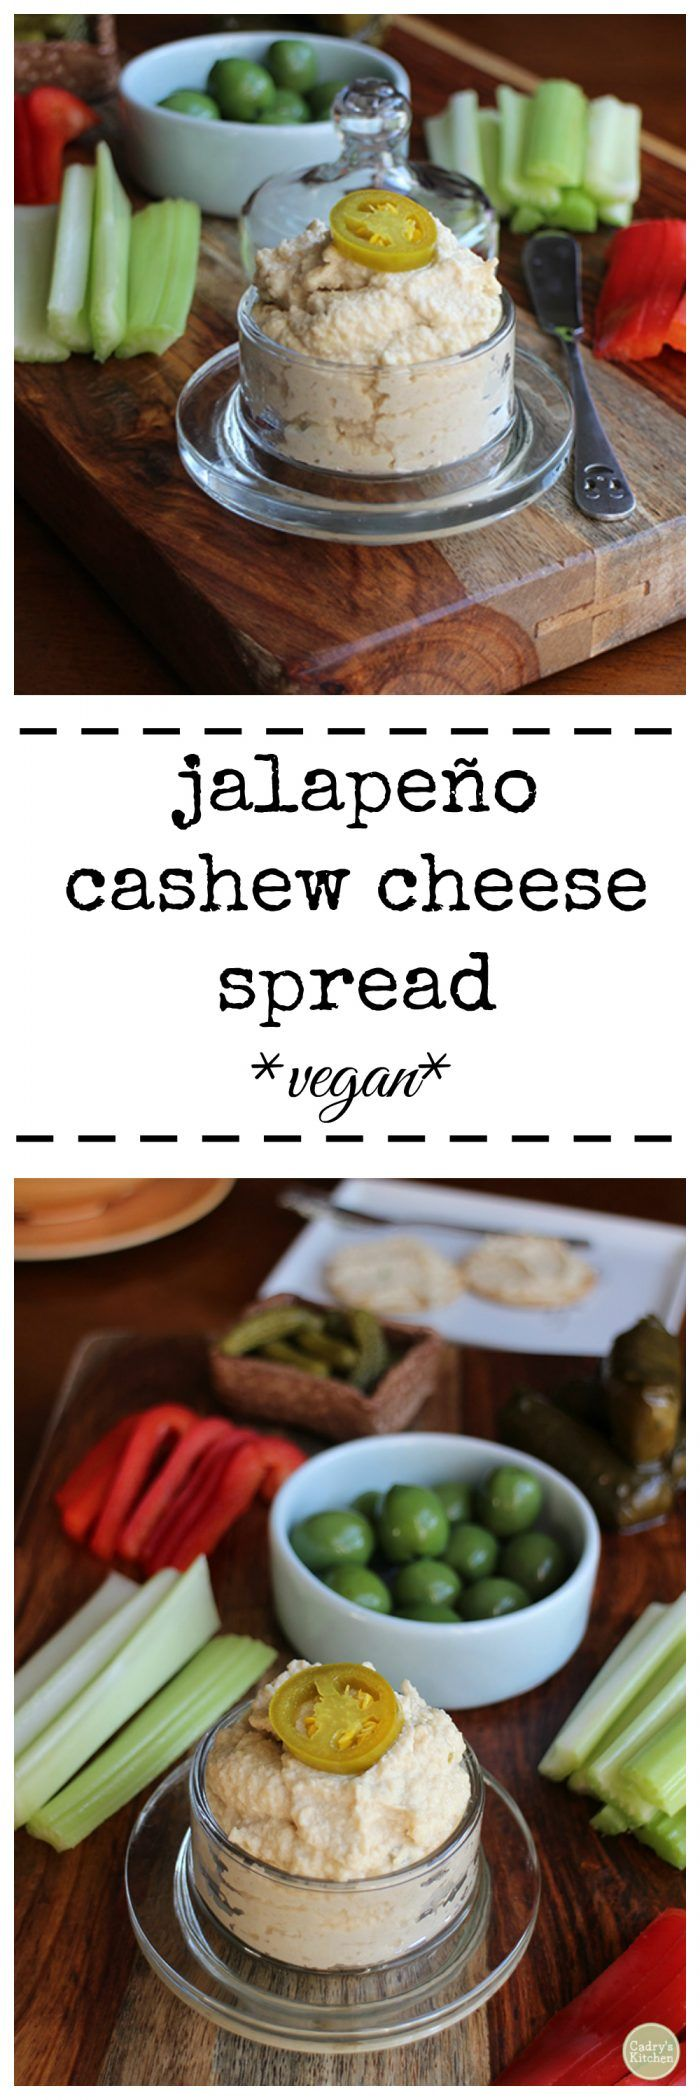 Jalapeno cashew cheese spread. With a base of raw cashews, this spread snaps with the flavor of pickled jalapeños. Vegan. Dairy free. | cadryskitchen.com via @cadryskitchen #vegan #nondairy #dairyfree #jalapeno